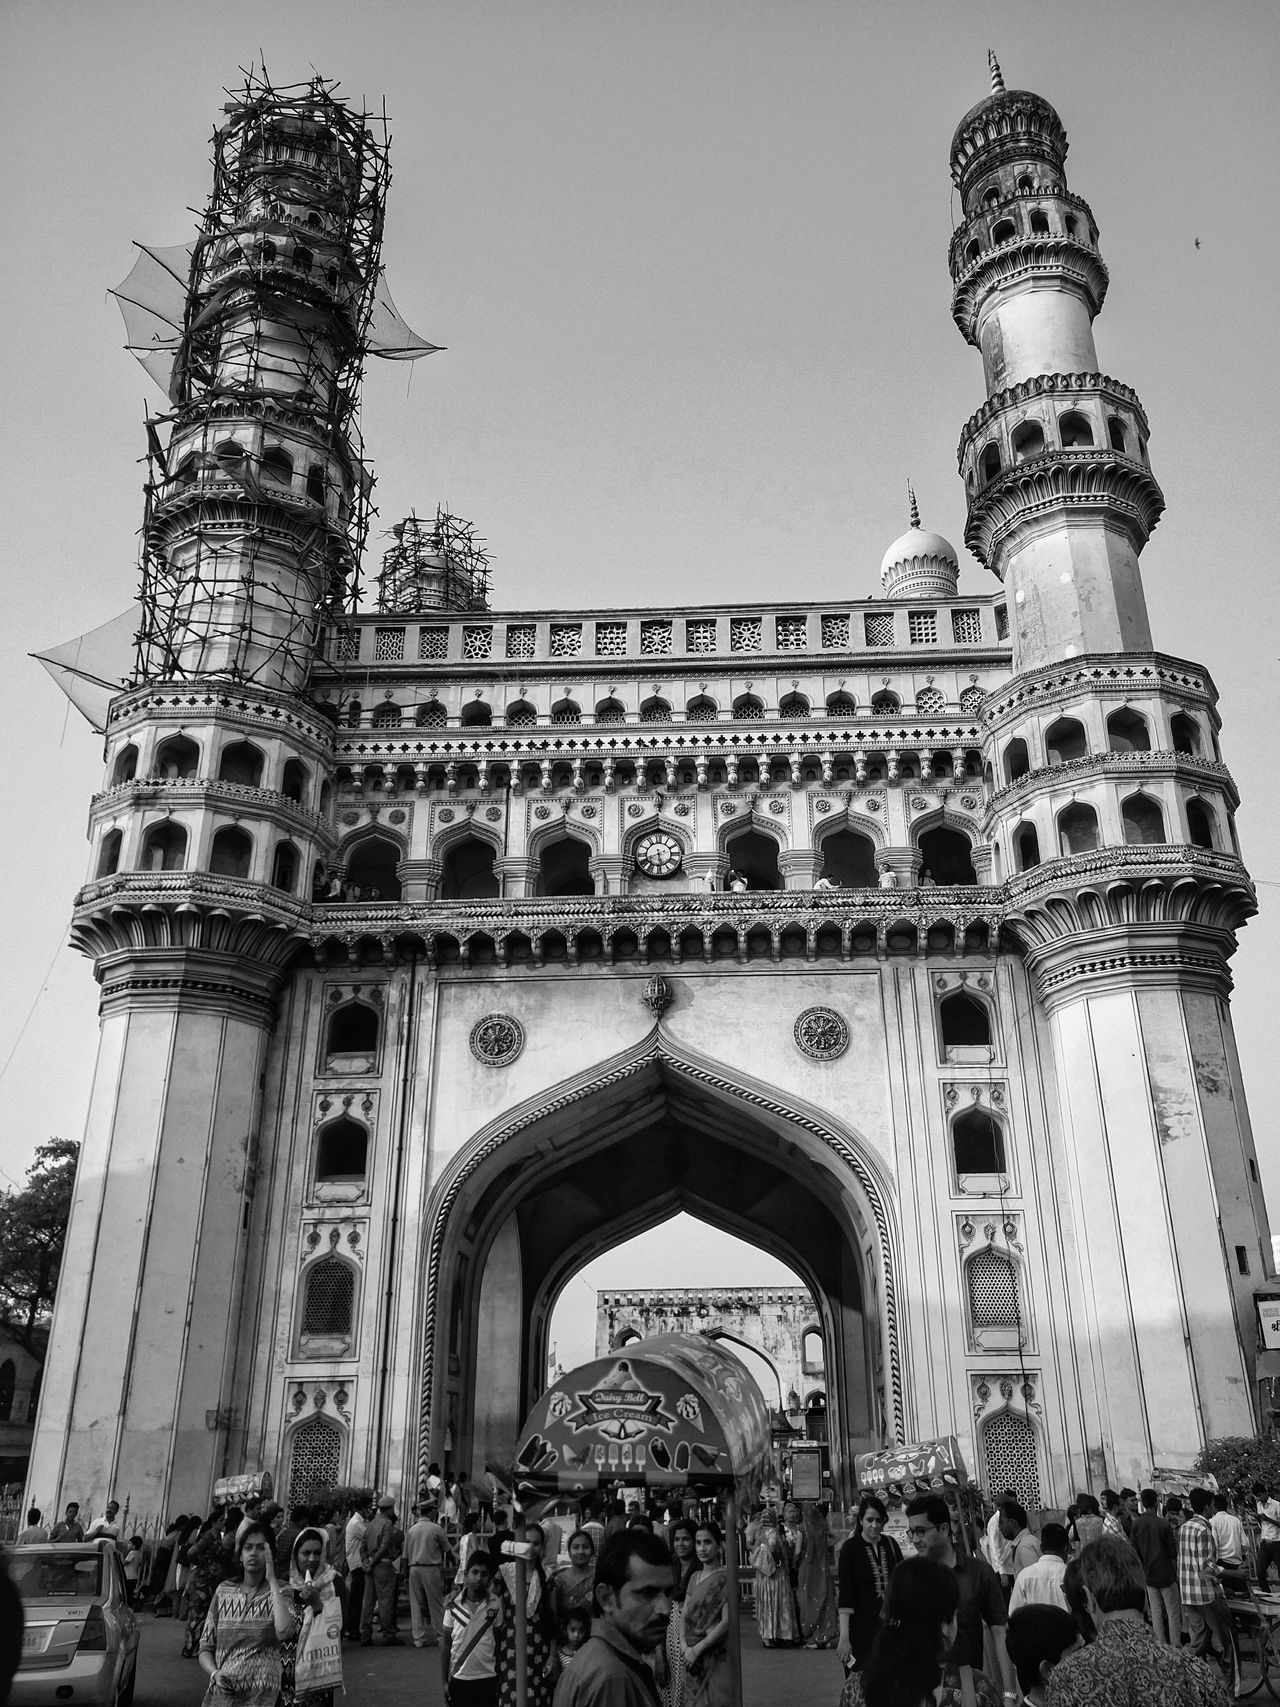 Architecture City Travel Destinations Tourism History Cultures Built Structure Building Exterior Outdoors Day First Eyeem Photo Blackandwhite Oneplus 2 Eyeemphoto Indian India EyeEm Bnw EyeEm Place Of Worship EyeEmNewHere Hyderabad Charminar Hyderabad Hyderabad,India Hyderabaddiaries Hyderabad, India